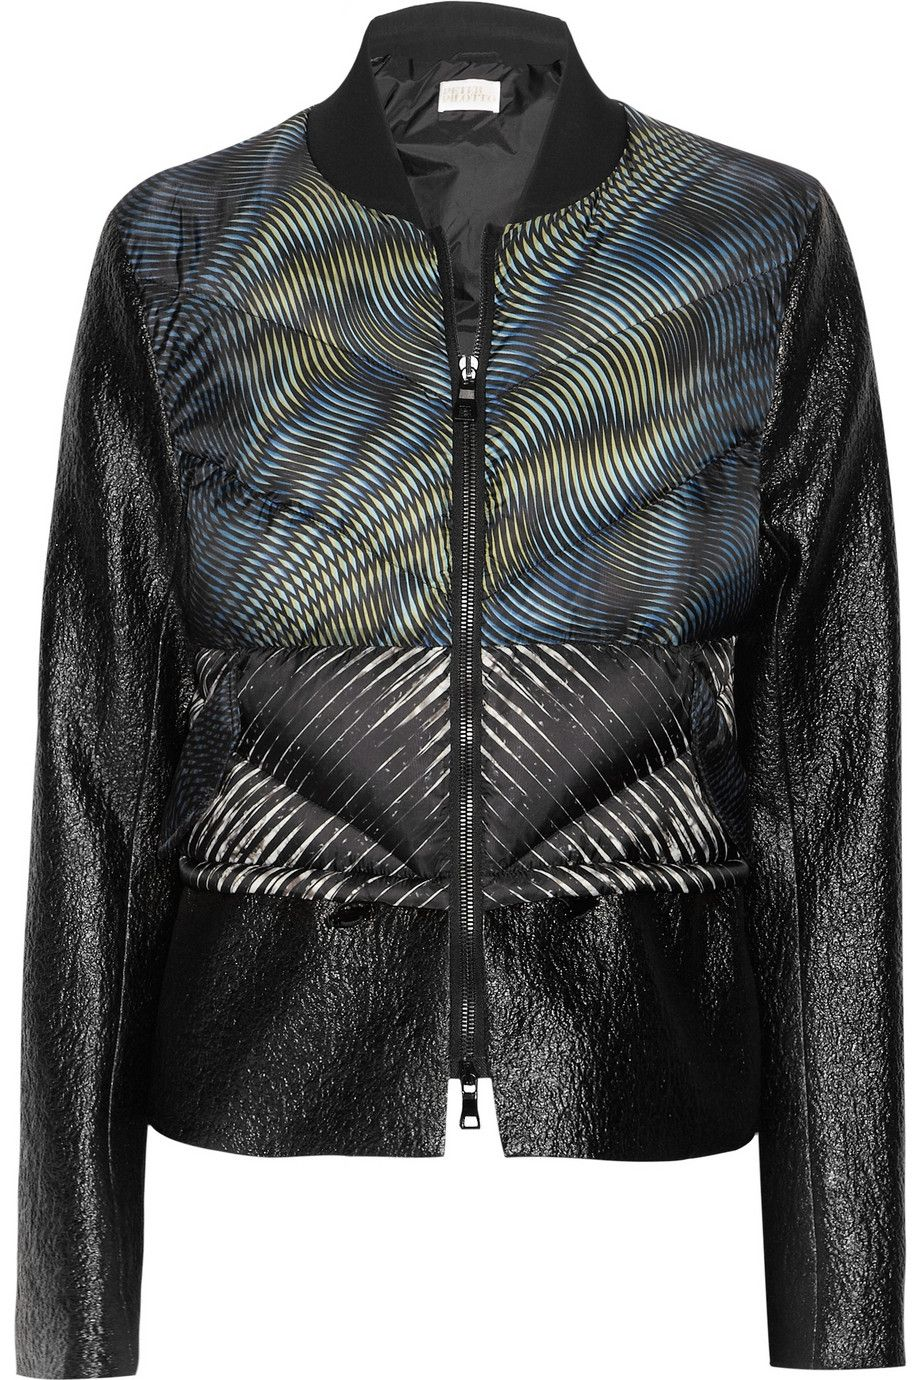 Peter Pilotto | Ri printed quilted and textured jacket